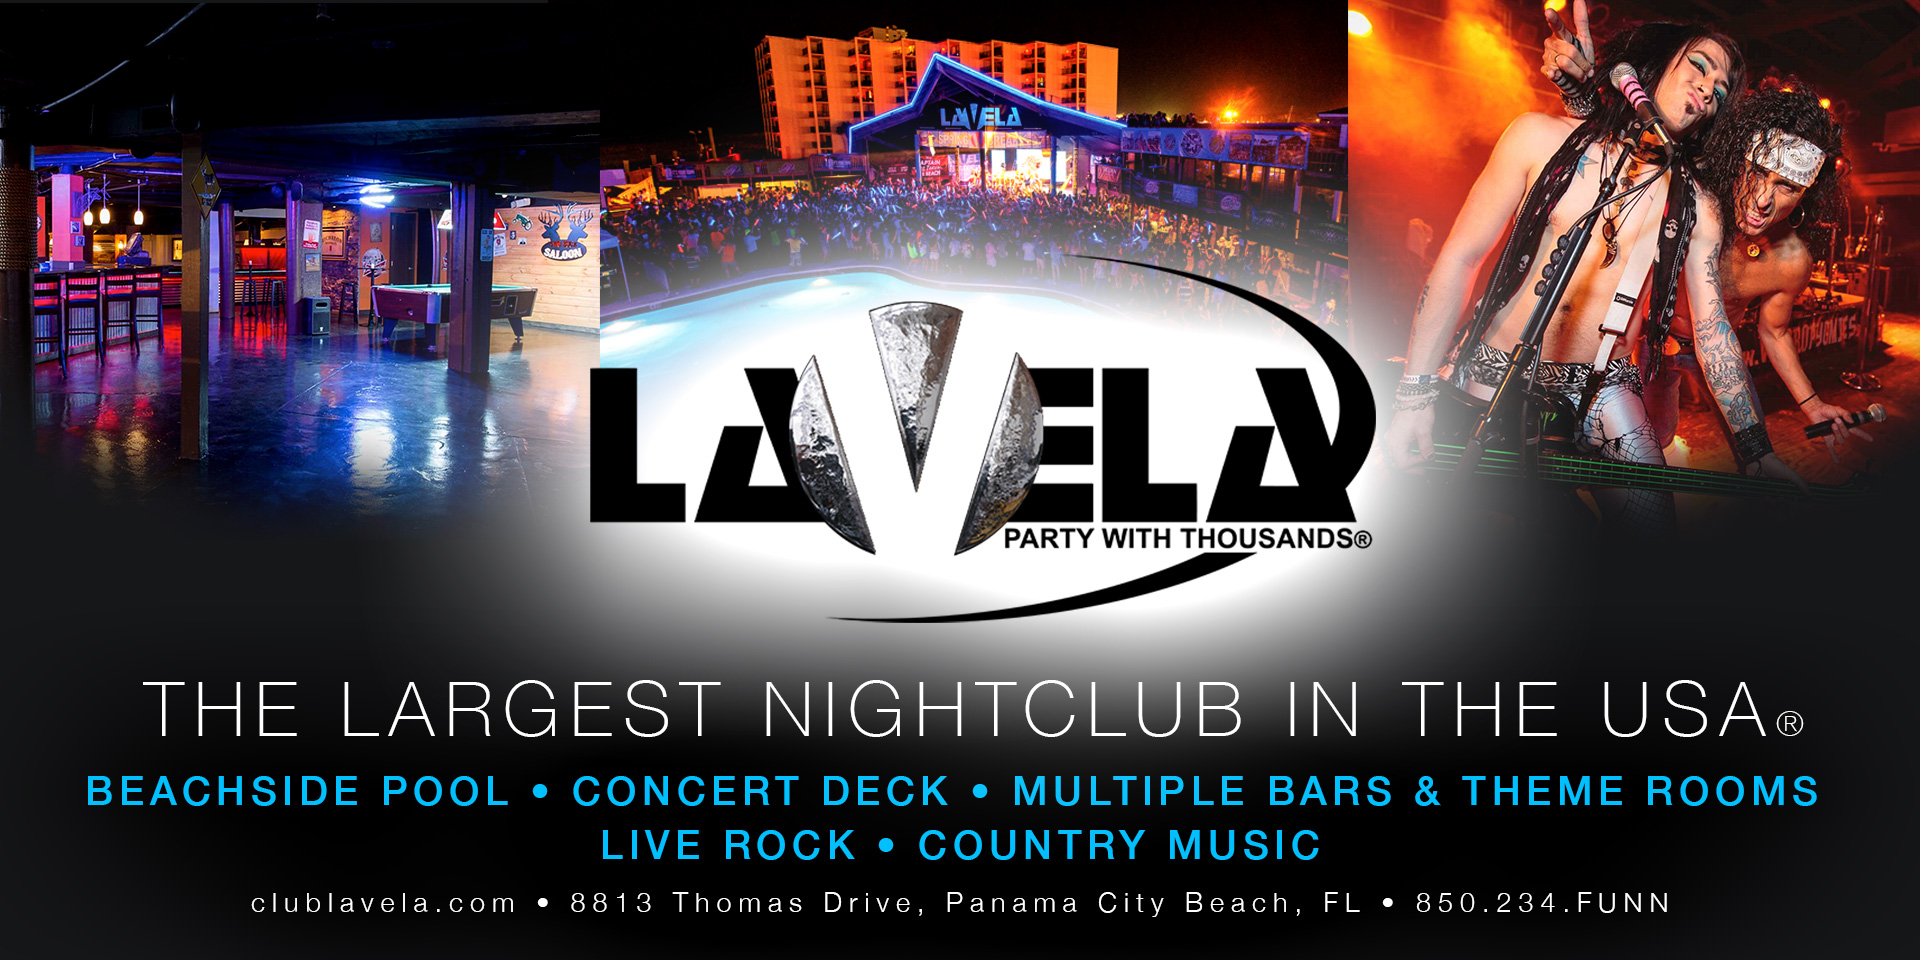 Club La Vela -The largest Nightclub in the USA | Rally Venues